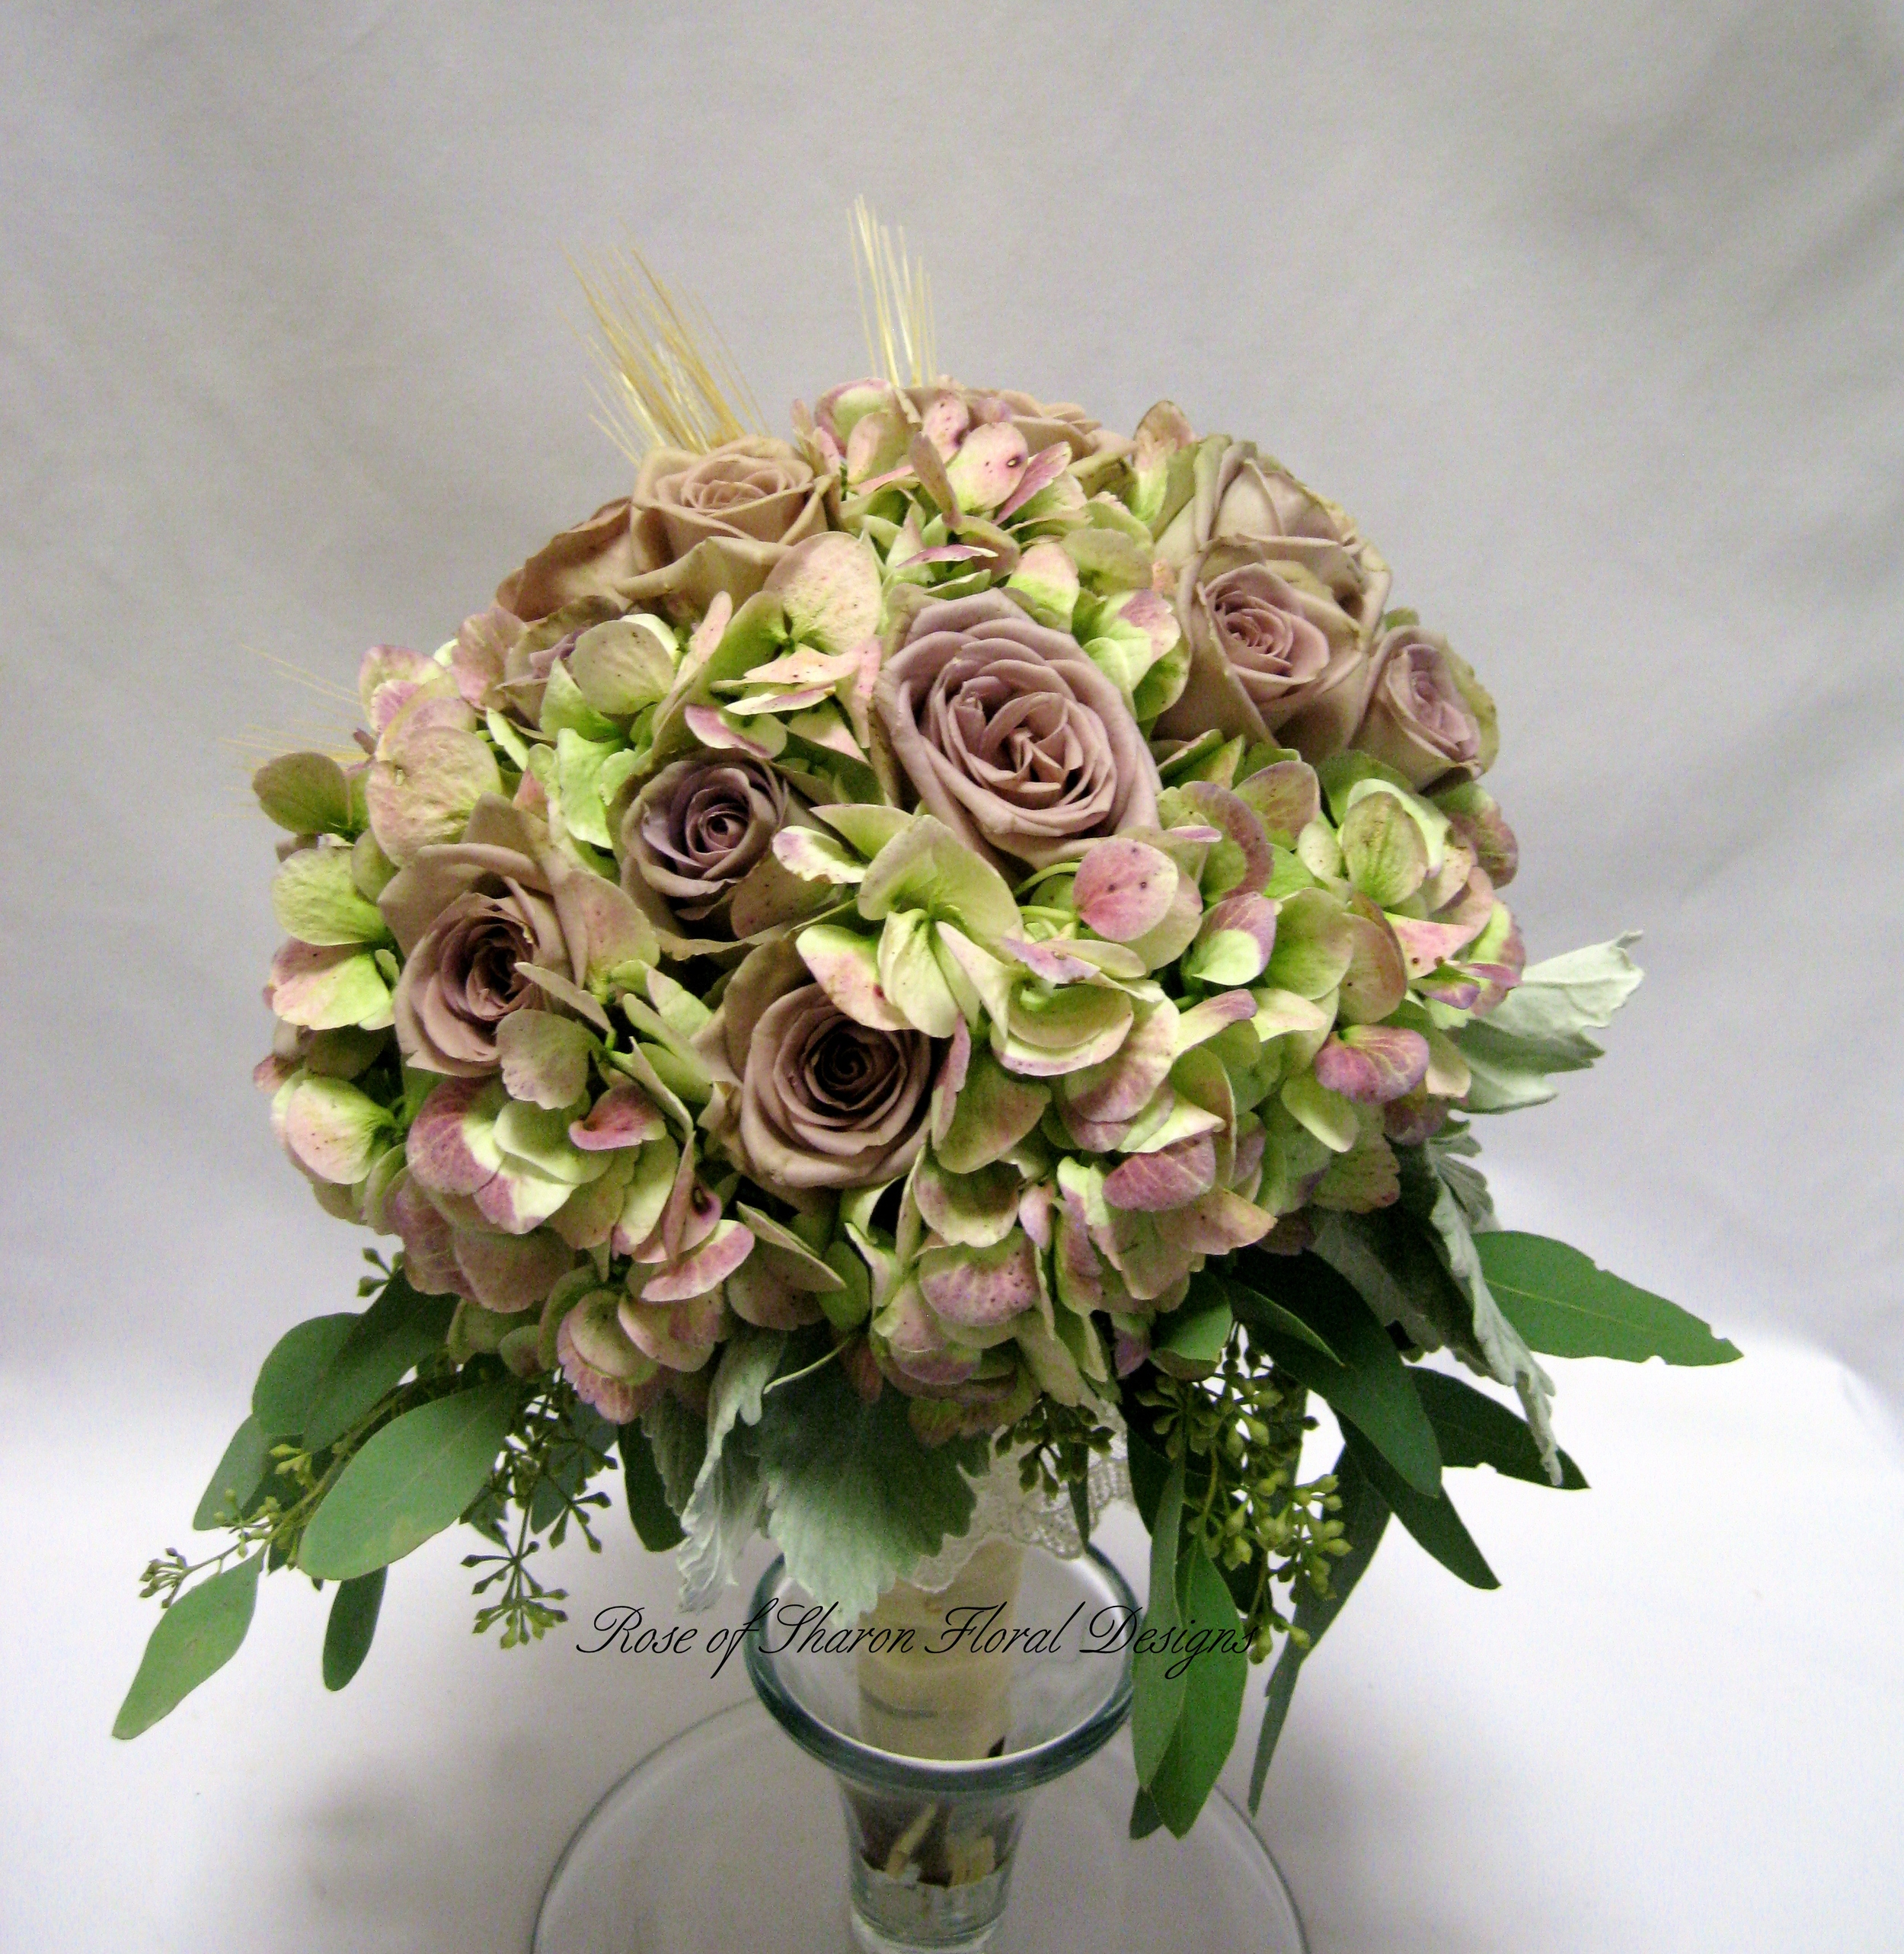 Hand Tied Bouquet with Antique Hydrangeas and Roses, Rose of Sharon Floral Designs